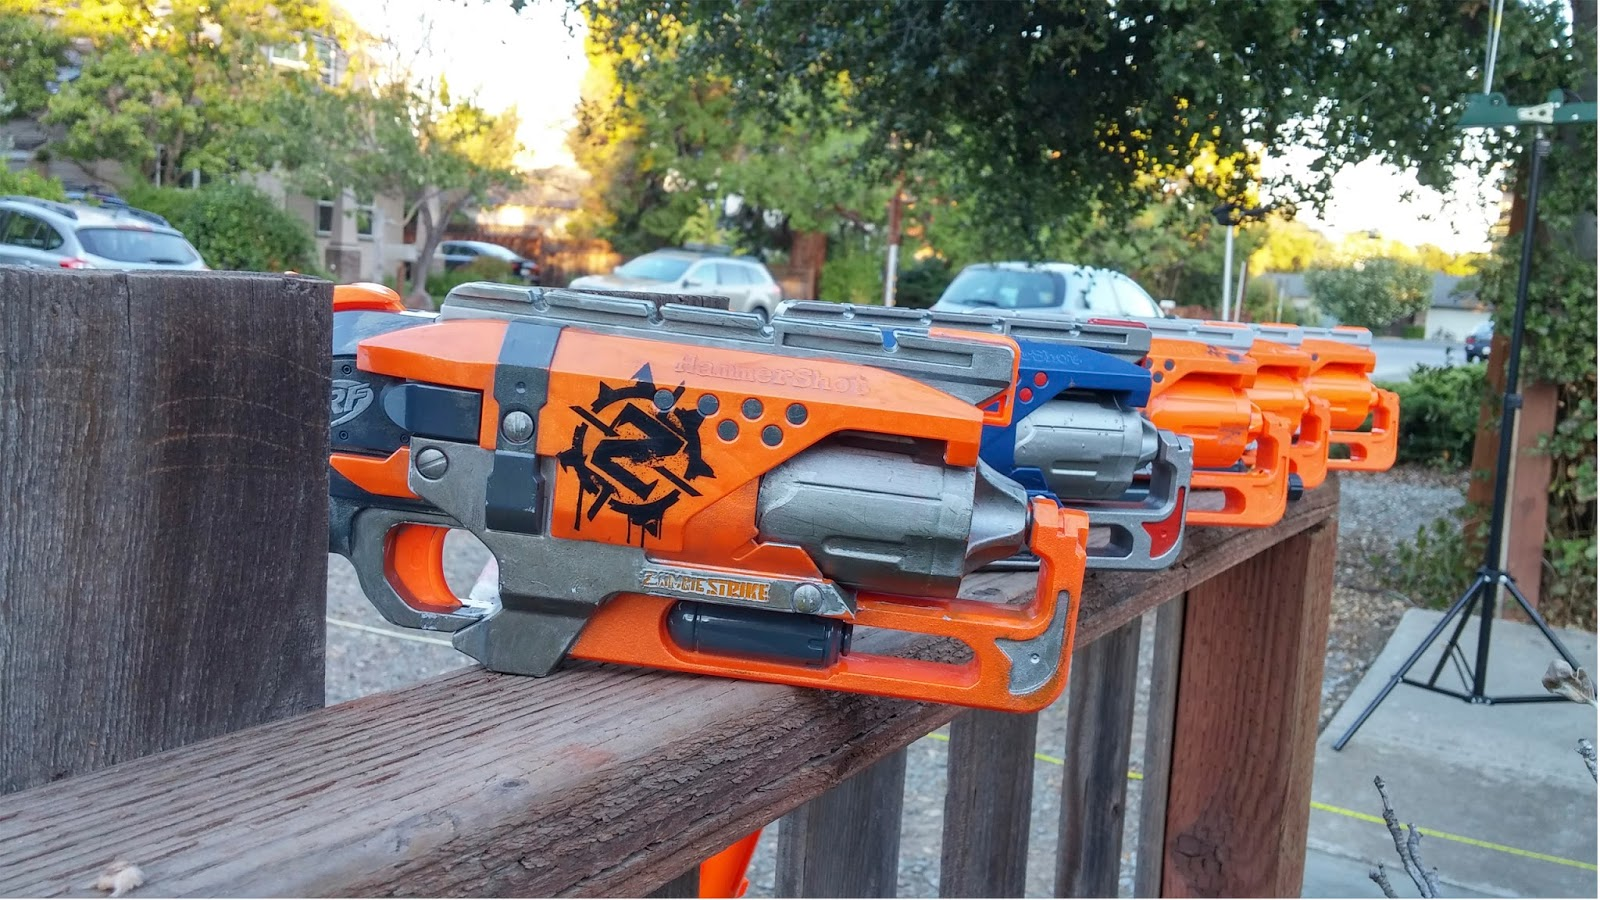 Bay Area Nerf Why A Hammershot